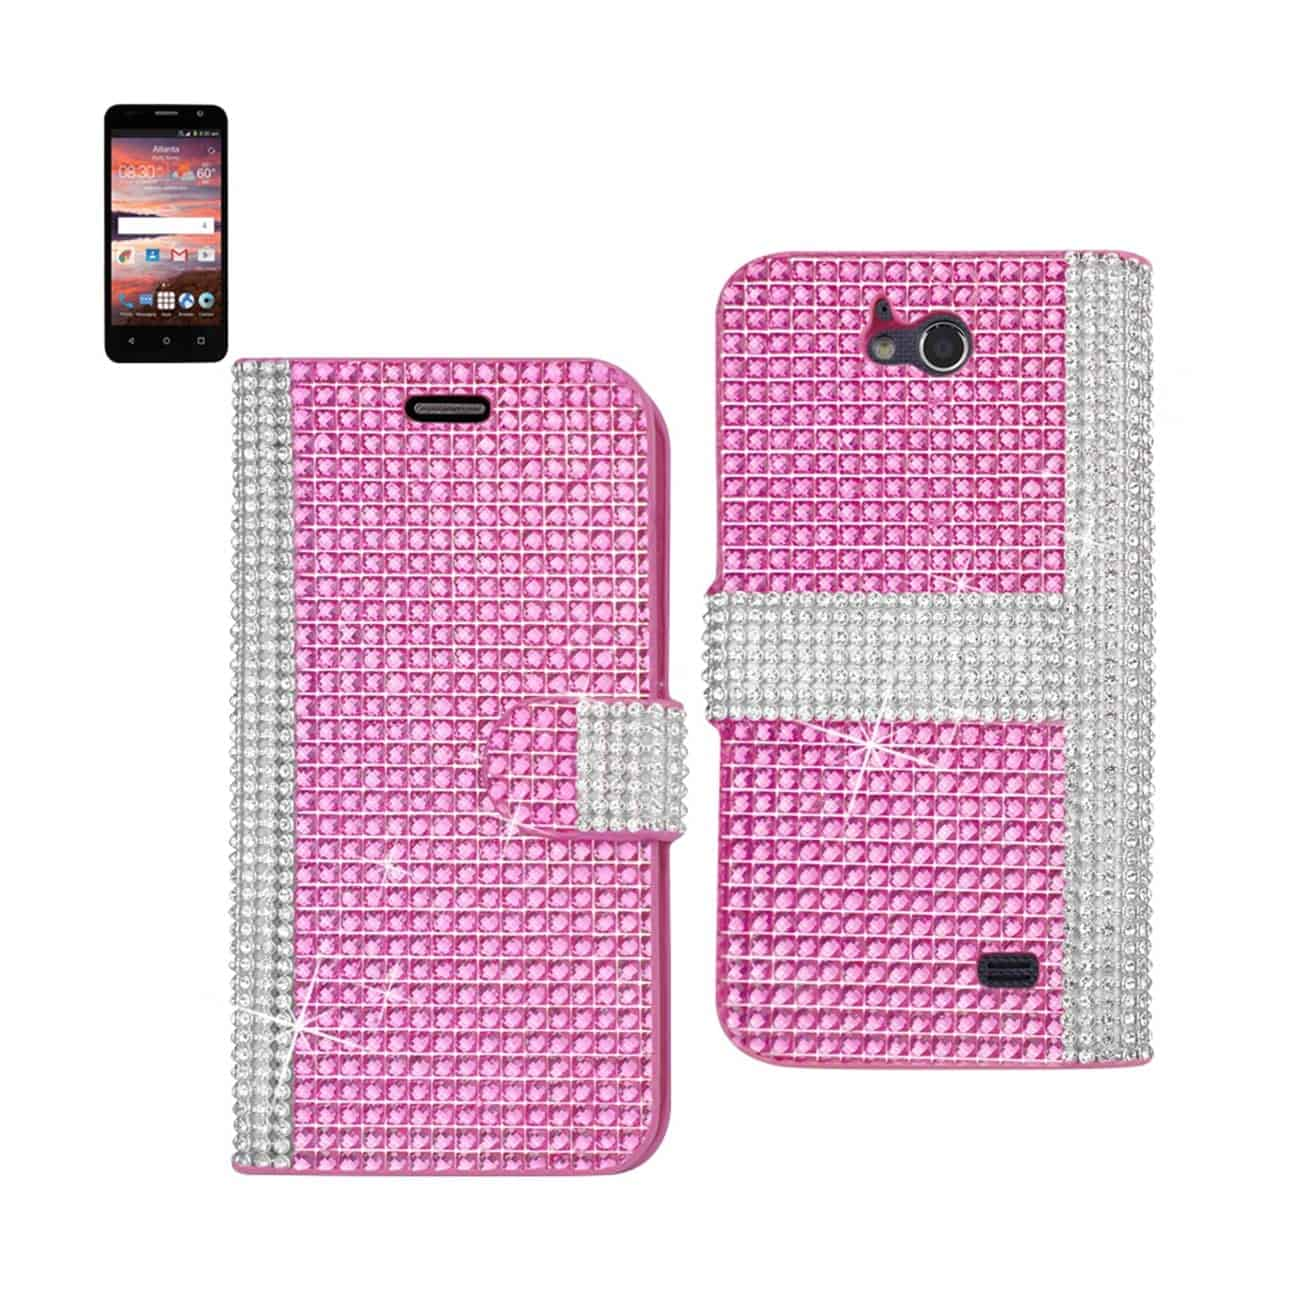 ZTE OVERTURE 2 JEWELRY DIAMOND RHINESTONE WALLET CASE IN PINK